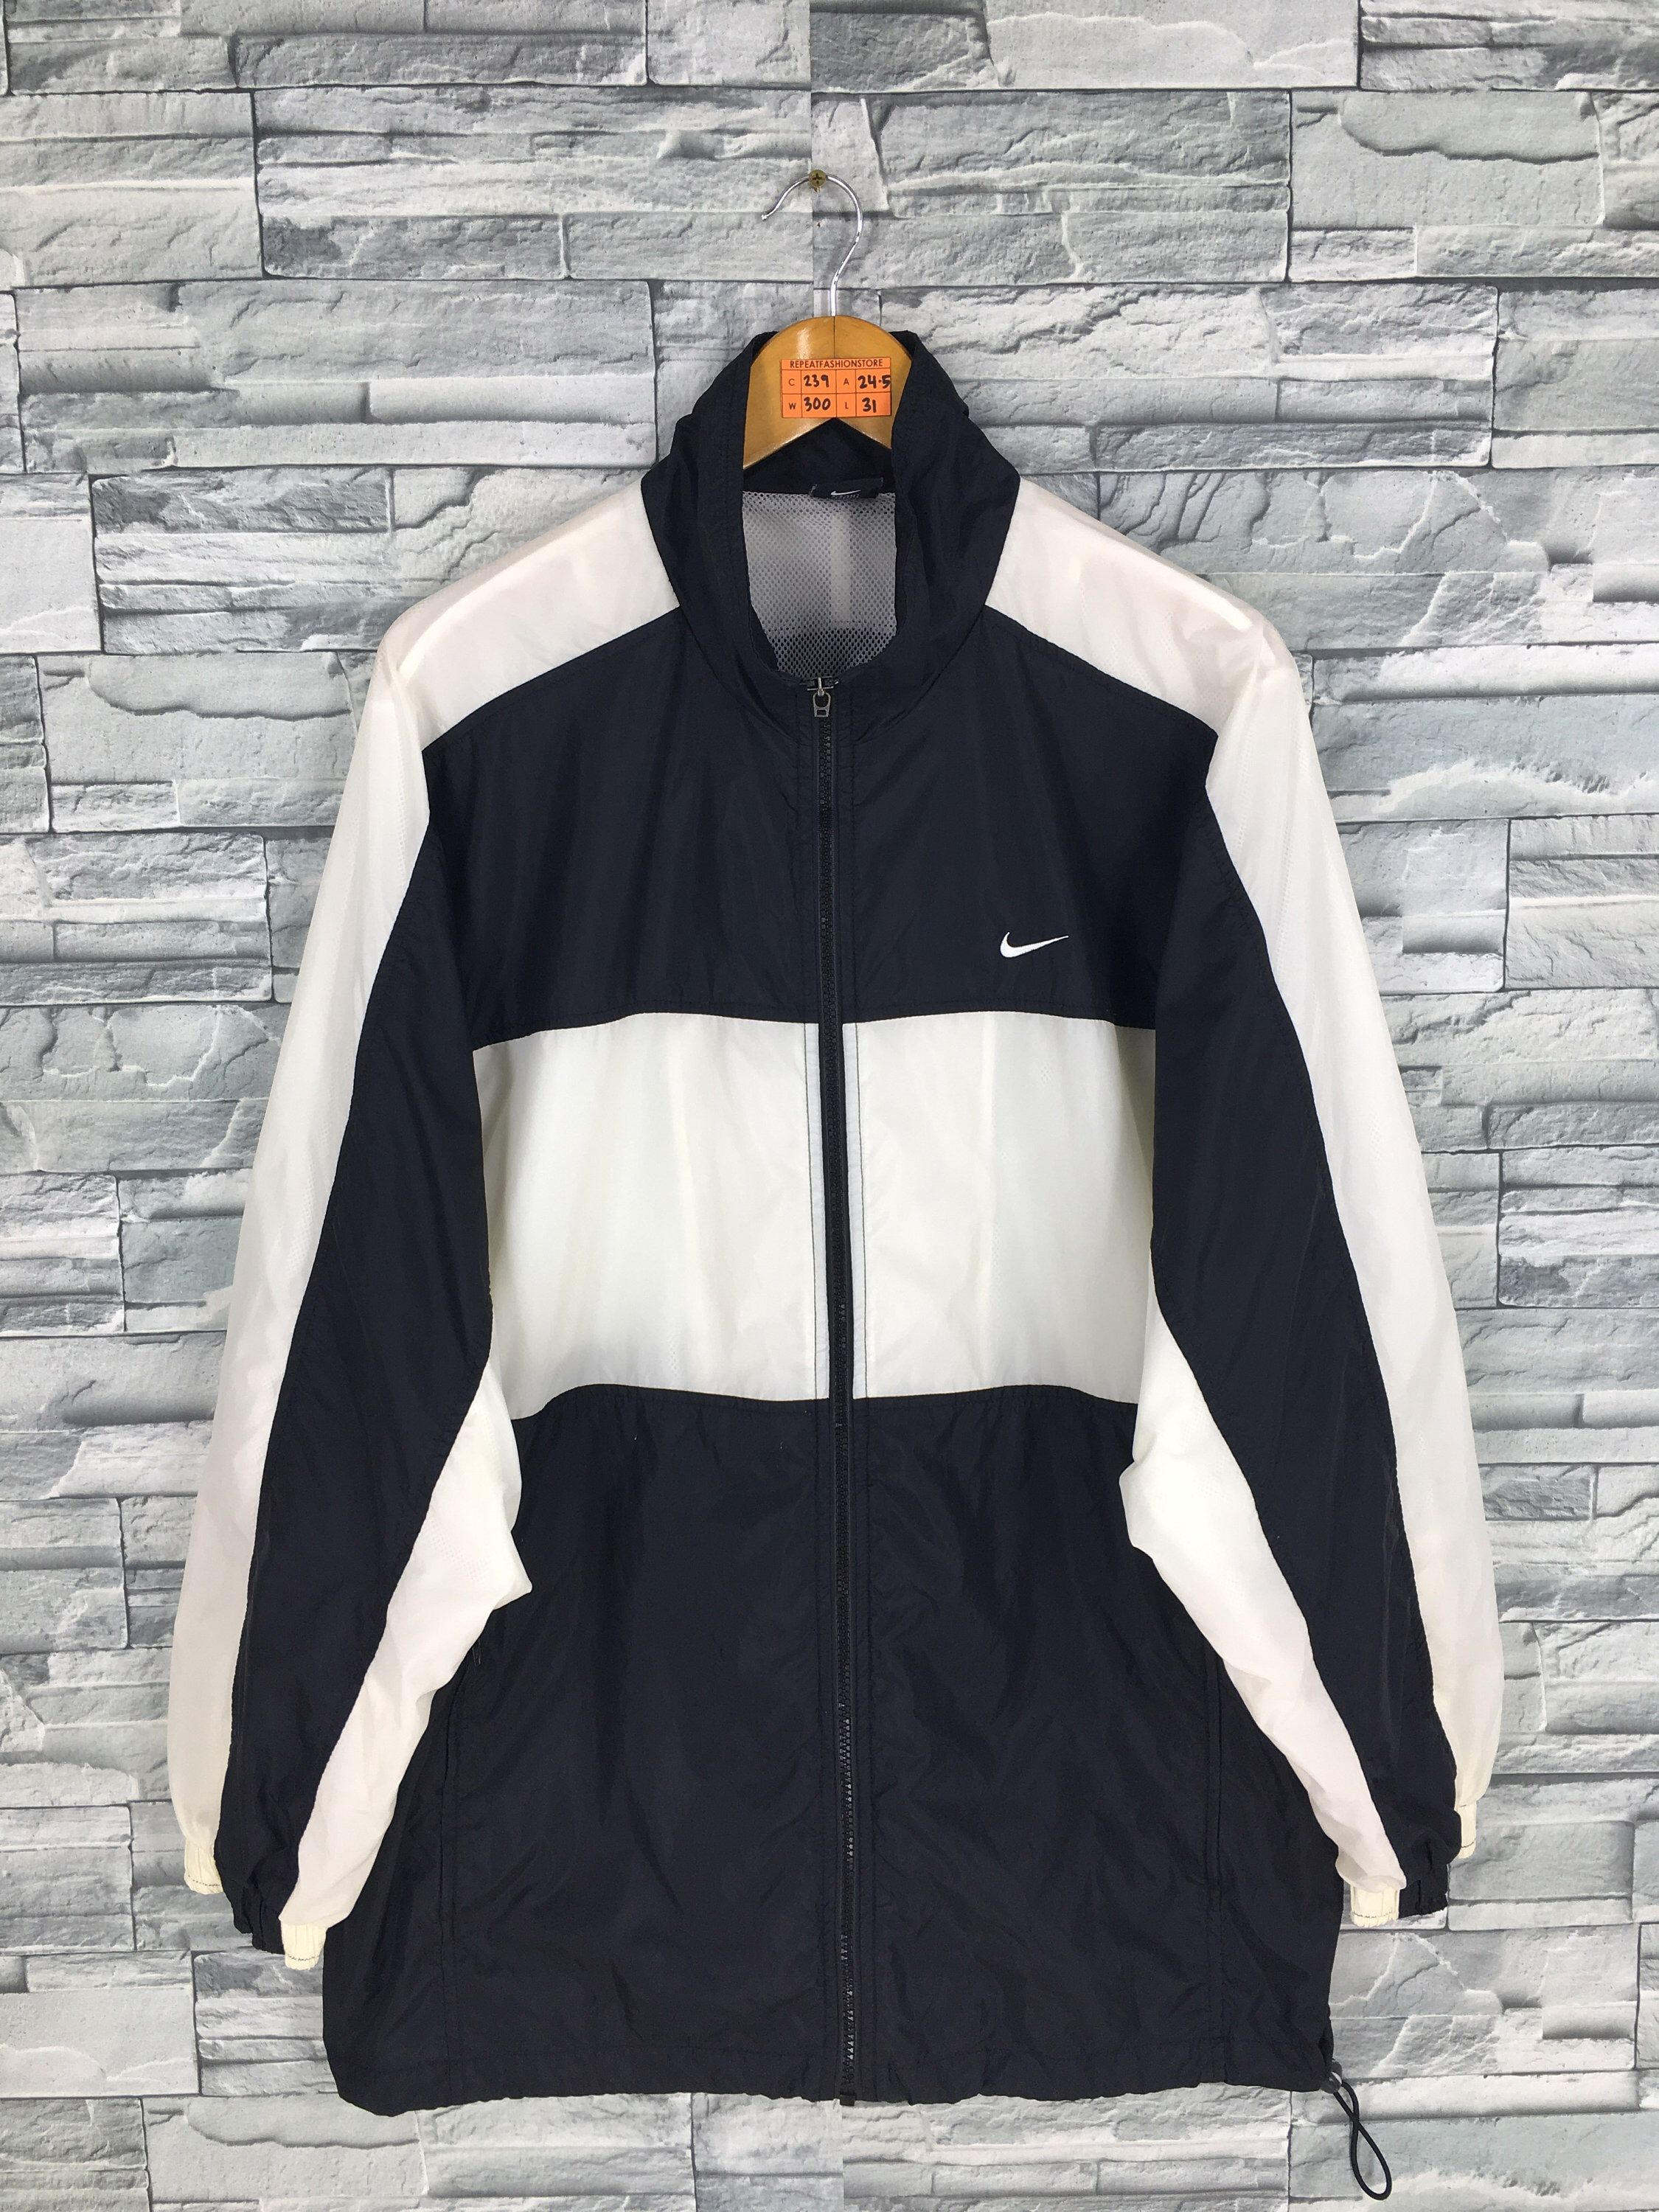 Excited To Share The Latest Addition To My Etsy Shop Vintage 90 S Nike Windbreaker Jacket Xlarg Nike Windbreaker Jacket Nike Windbreaker 90s Nike Windbreaker